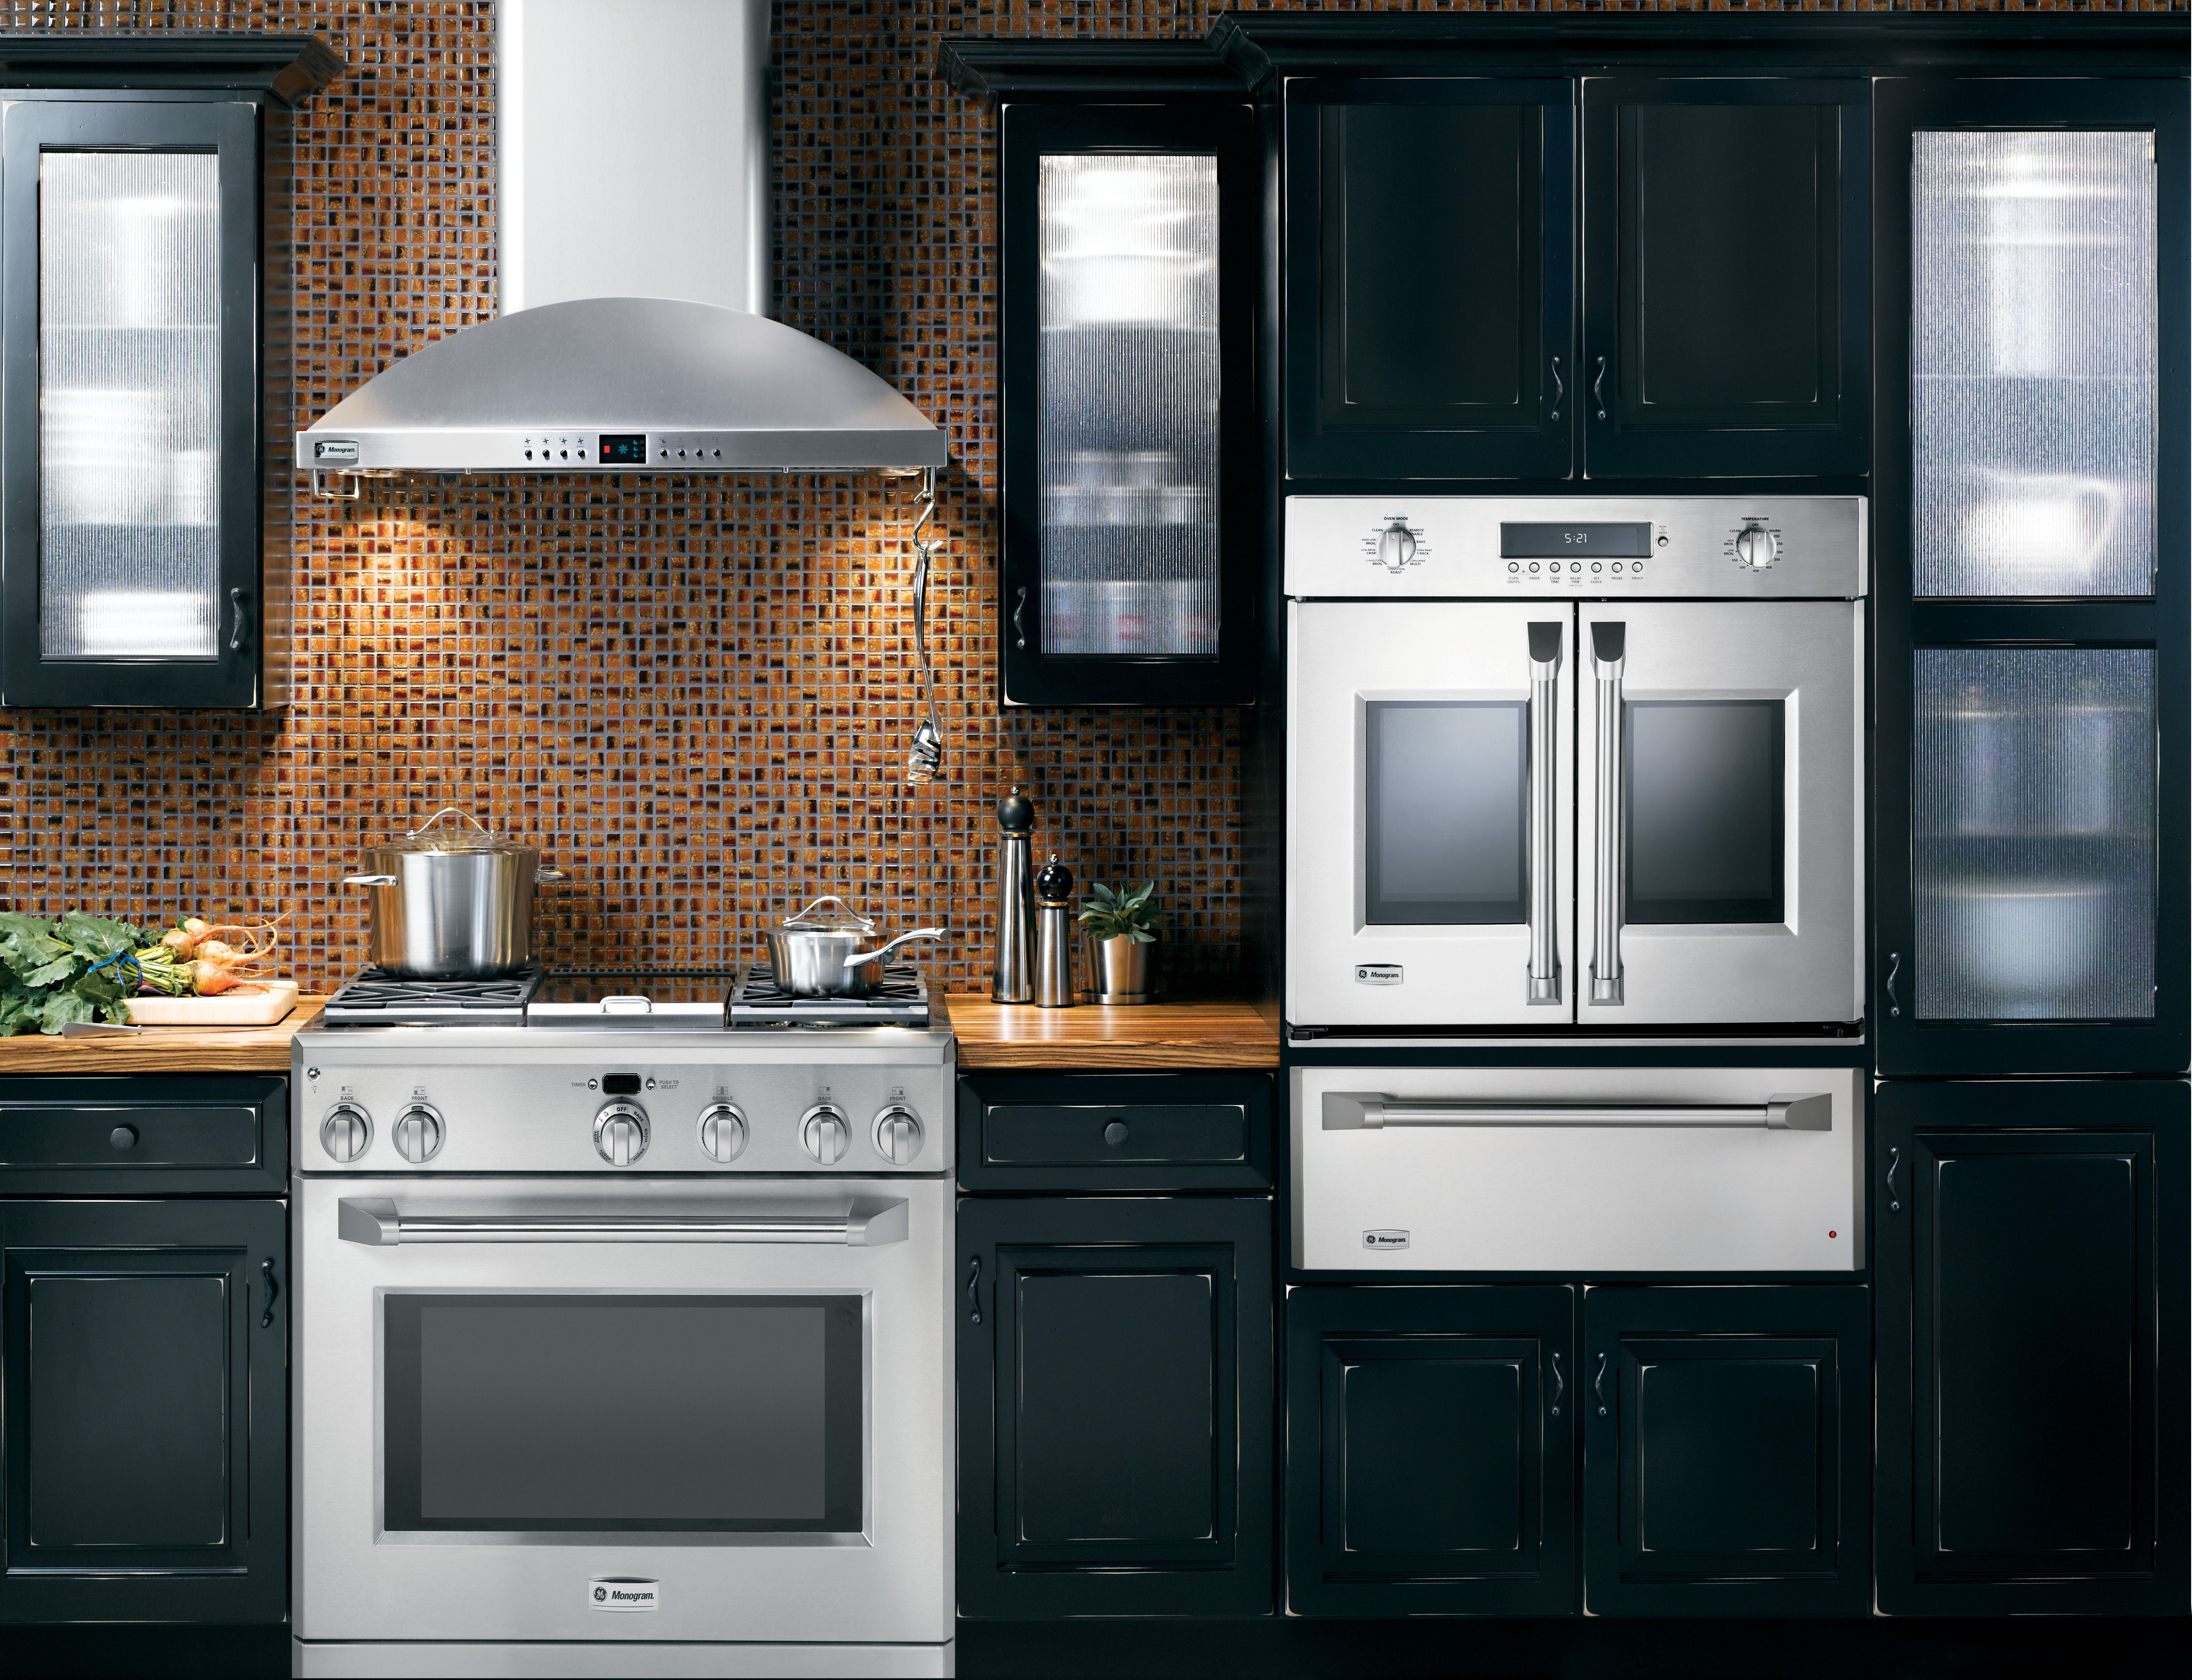 indesit is about buy aria for ideal affordable kitchen features breeze budget and saving can in cookers proving oven mealtimes that built make even the opting time flexibility with come mind an sure your best home change to a ovens